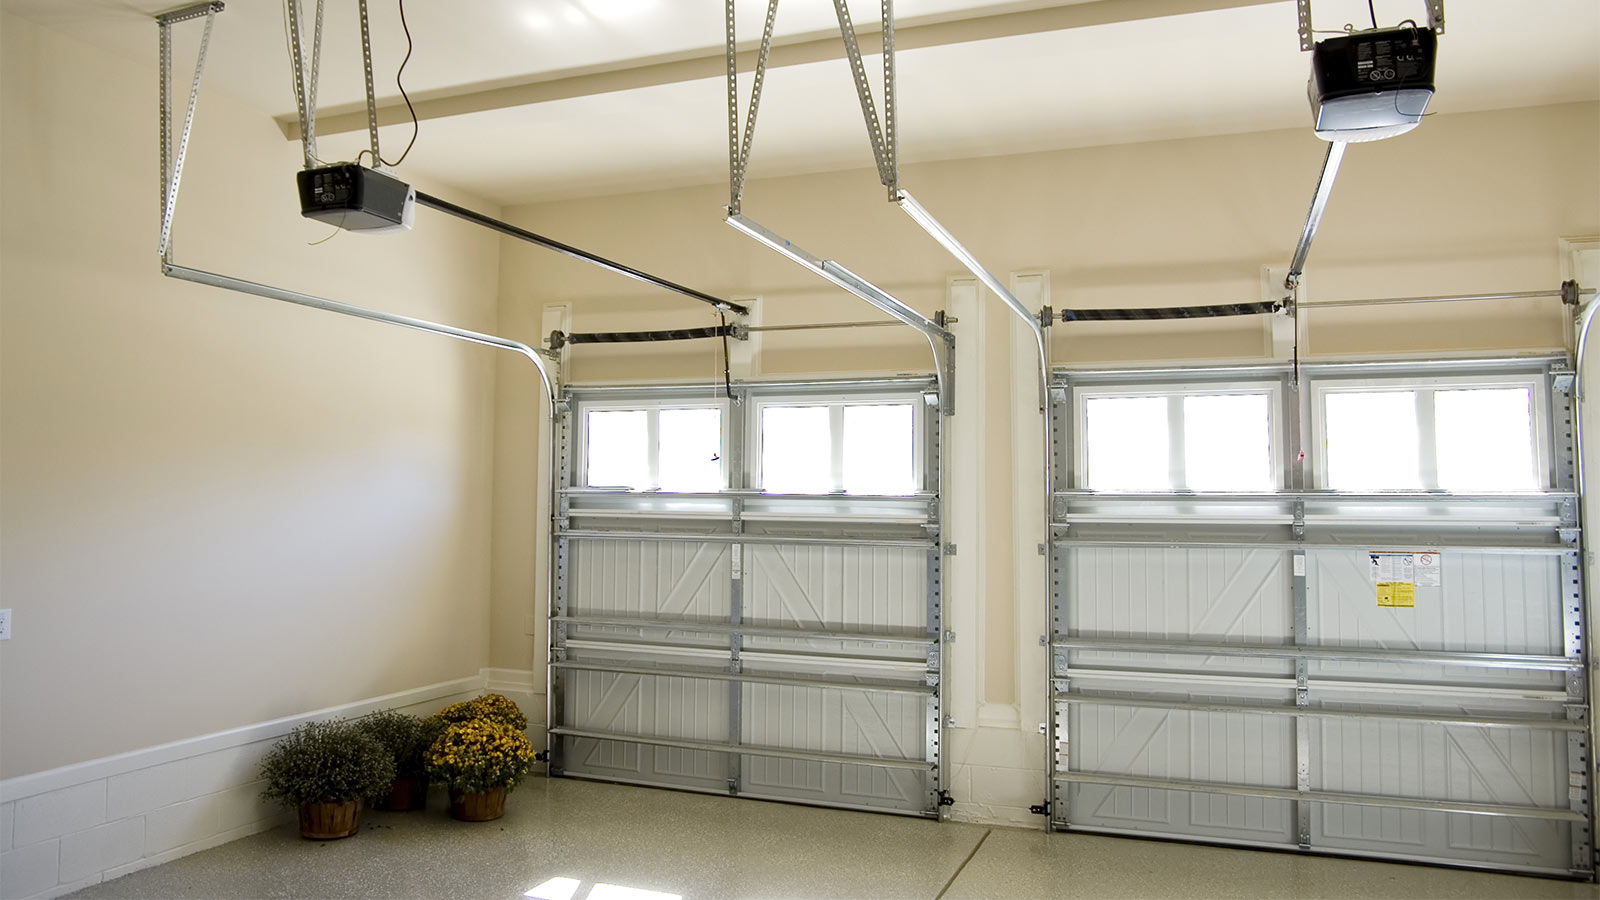 Sectional Garage Doors from Electric Gates Brentwood suppliers.